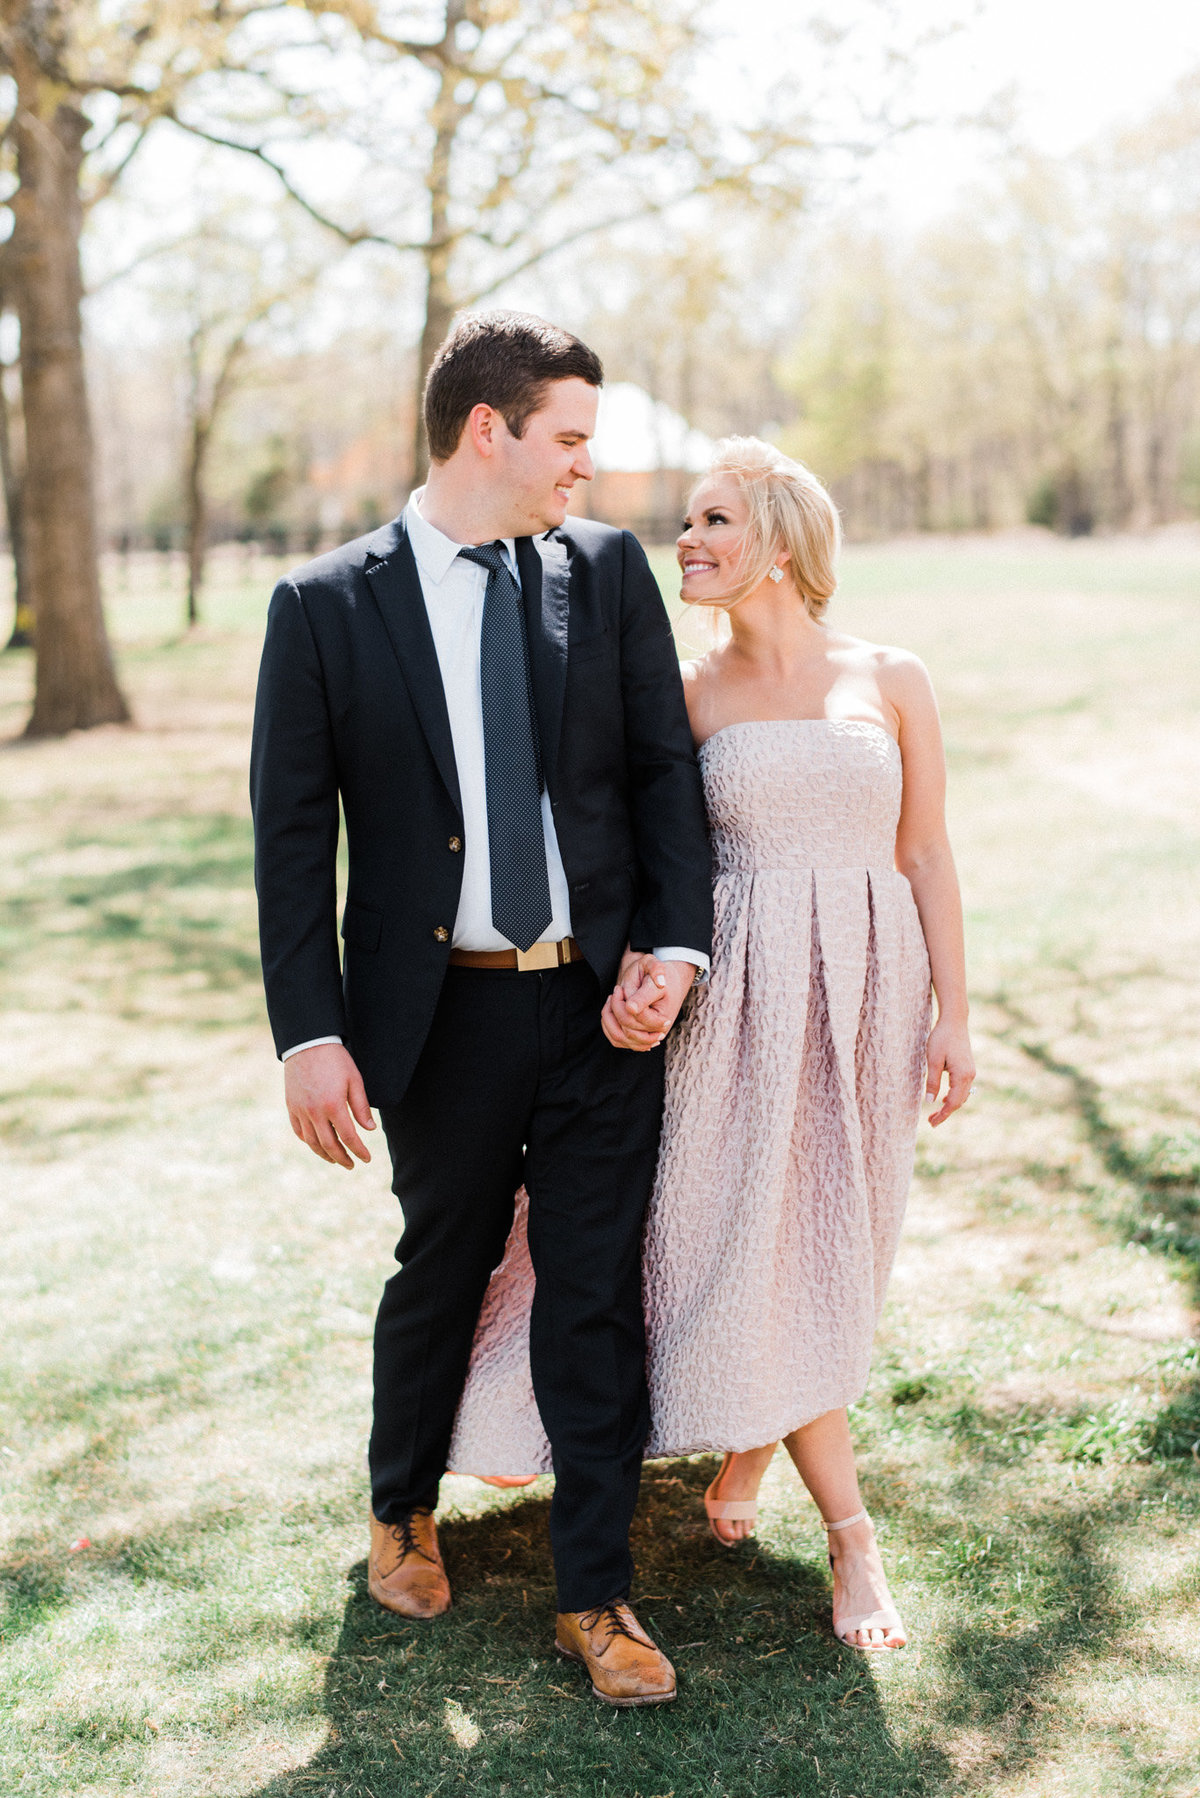 saint-louis-wedding-Photographer-dallas-the-white-sparrow-barn-3131